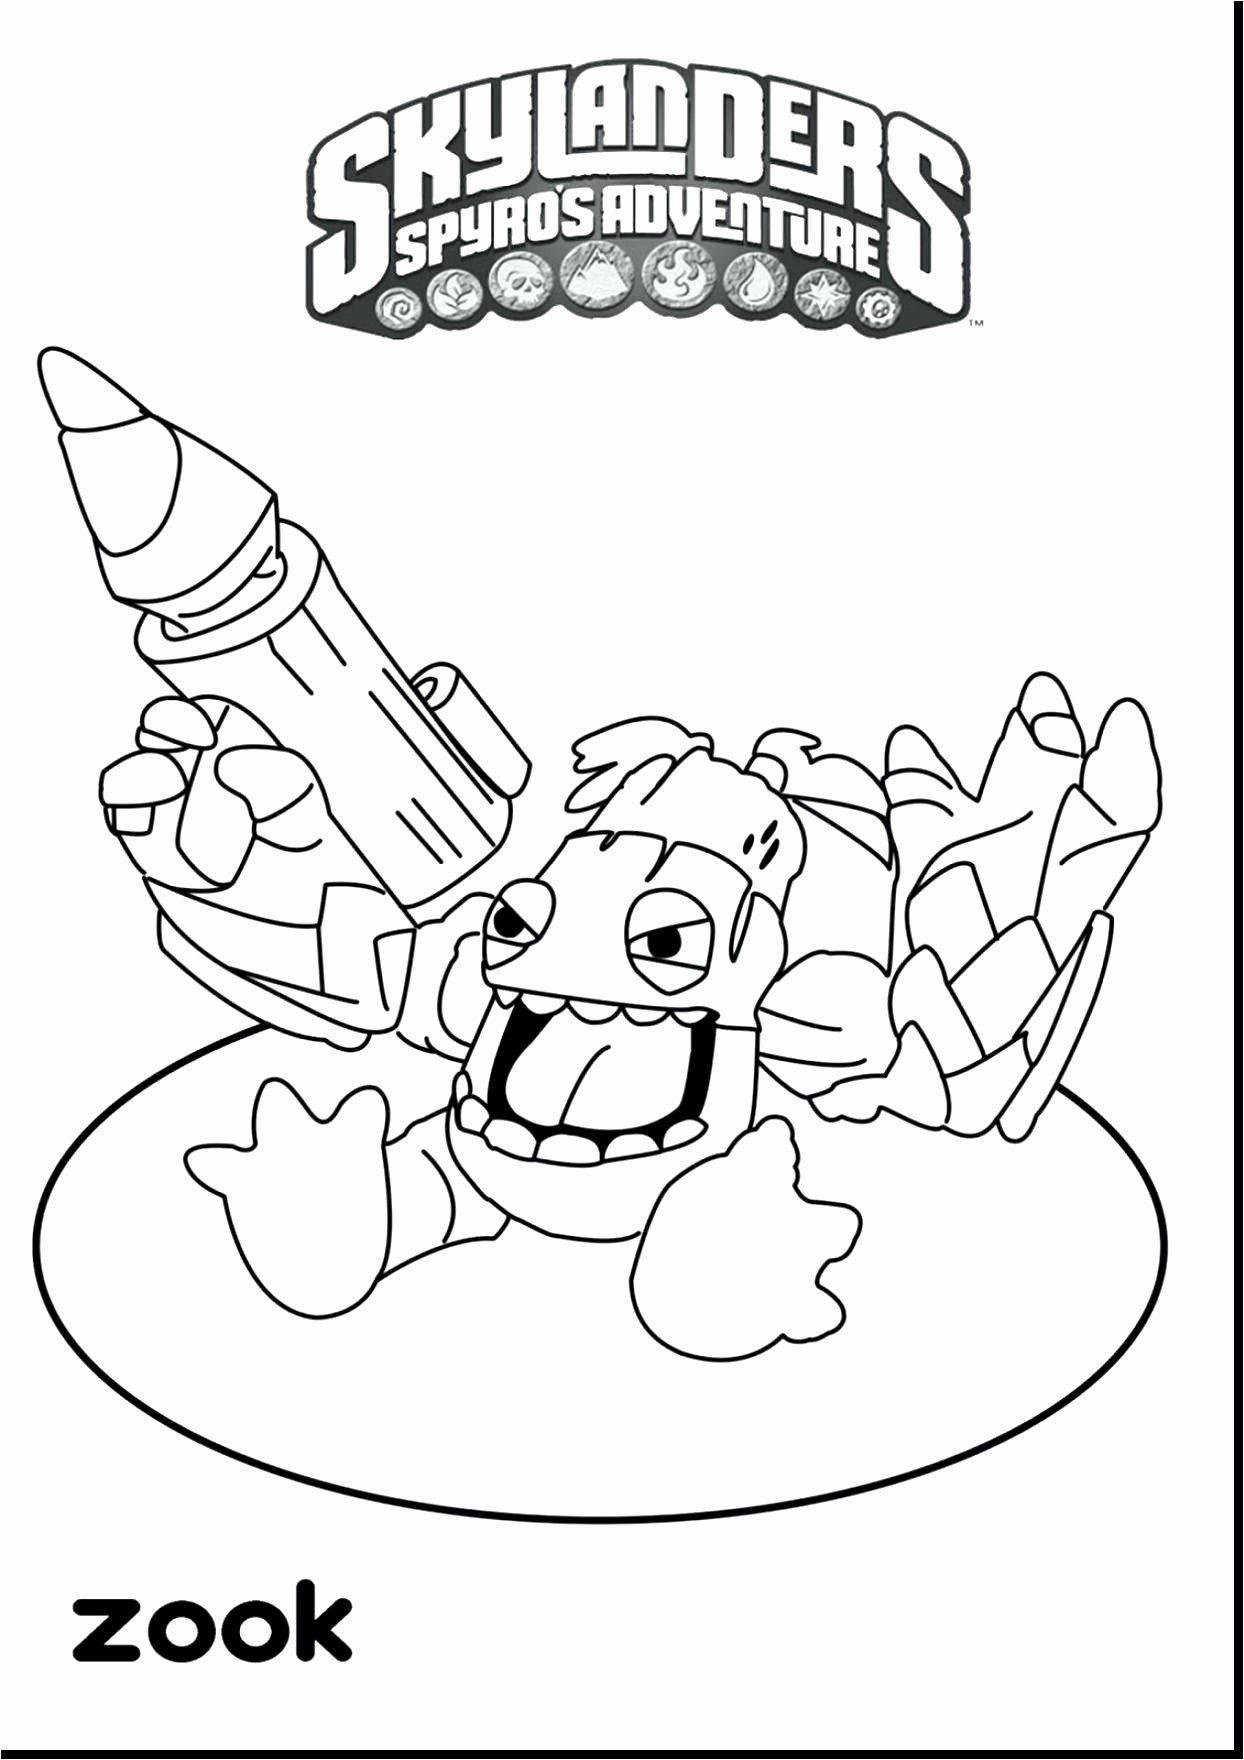 summer preschool coloring pages Download-Copyright Book Page Save Autumn Coloring Pages New Preschool Coloring Pages Fresh 15-p